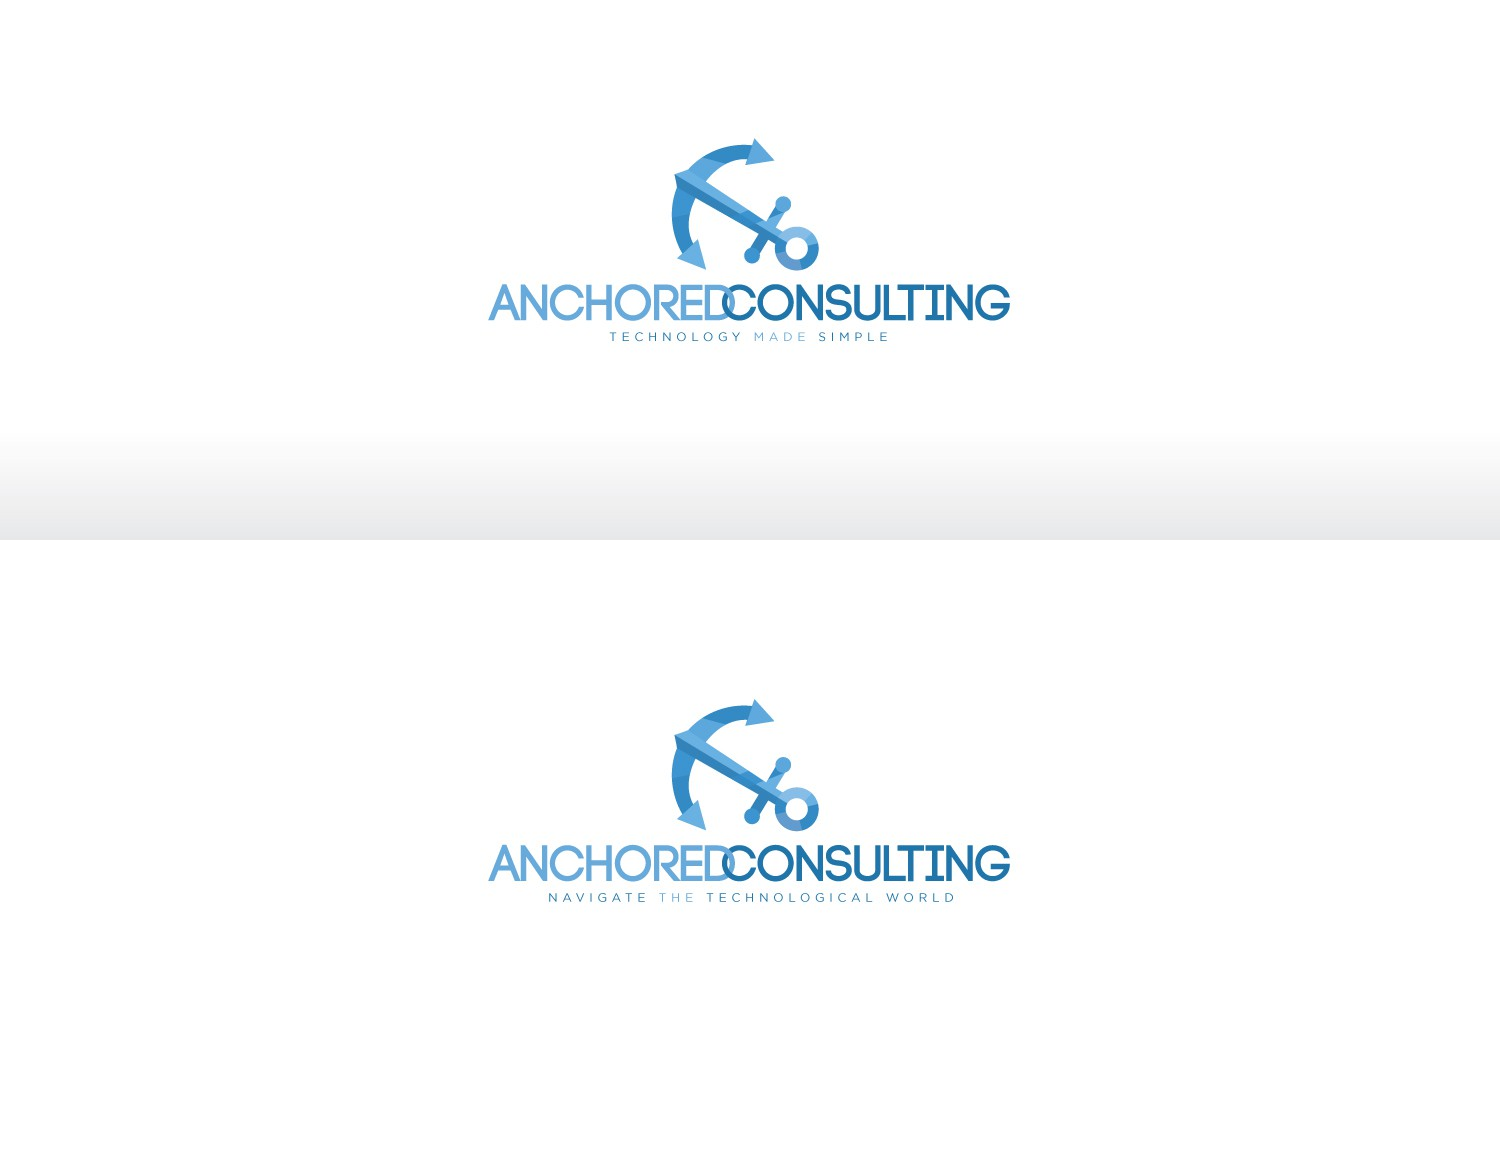 Help me launch a technology consulting business!